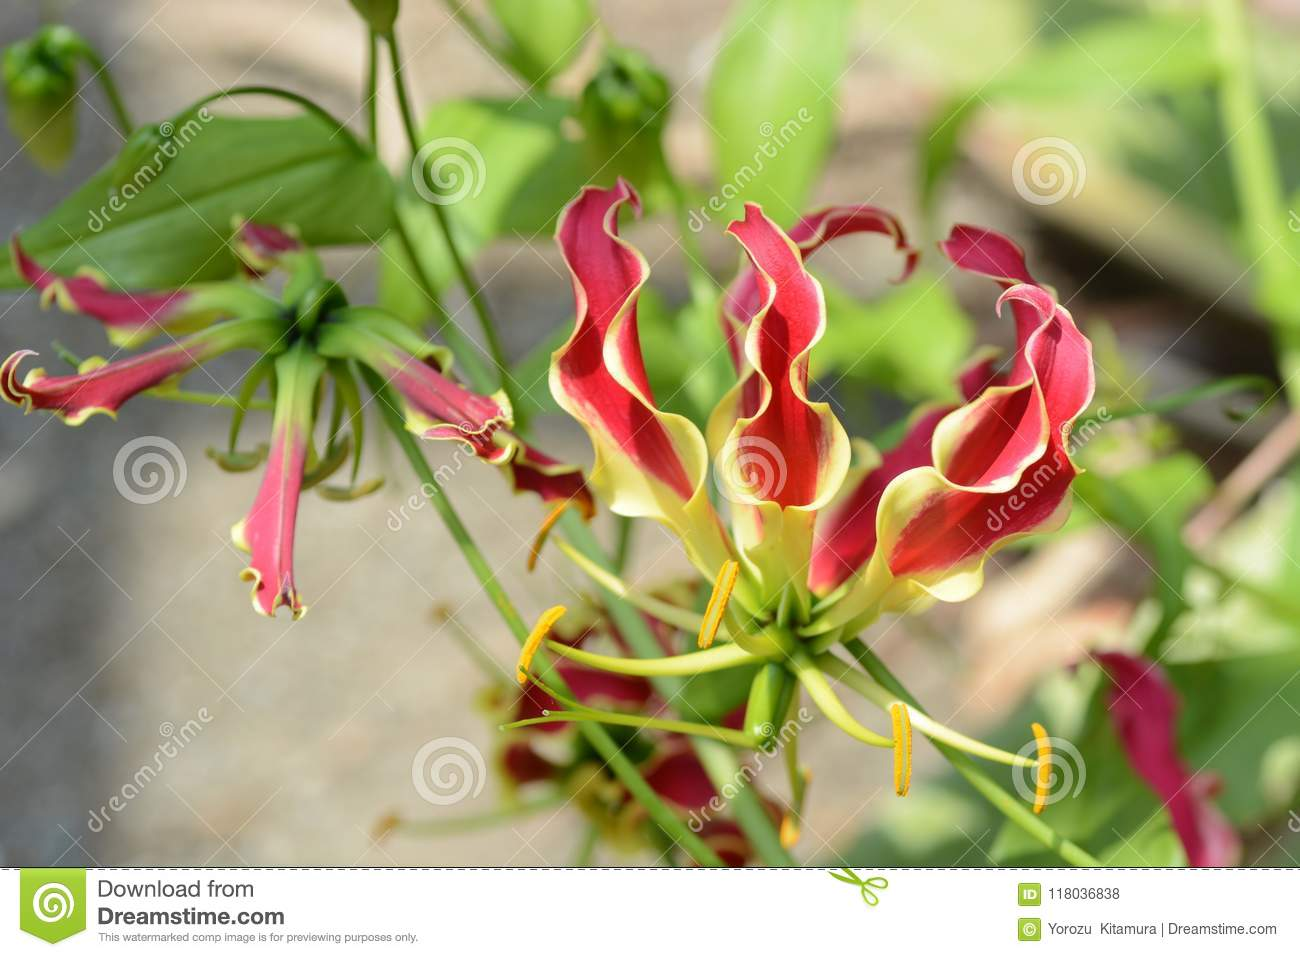 Glory lily stock photo image of glory botanical natural 118036838 glory lily izmirmasajfo